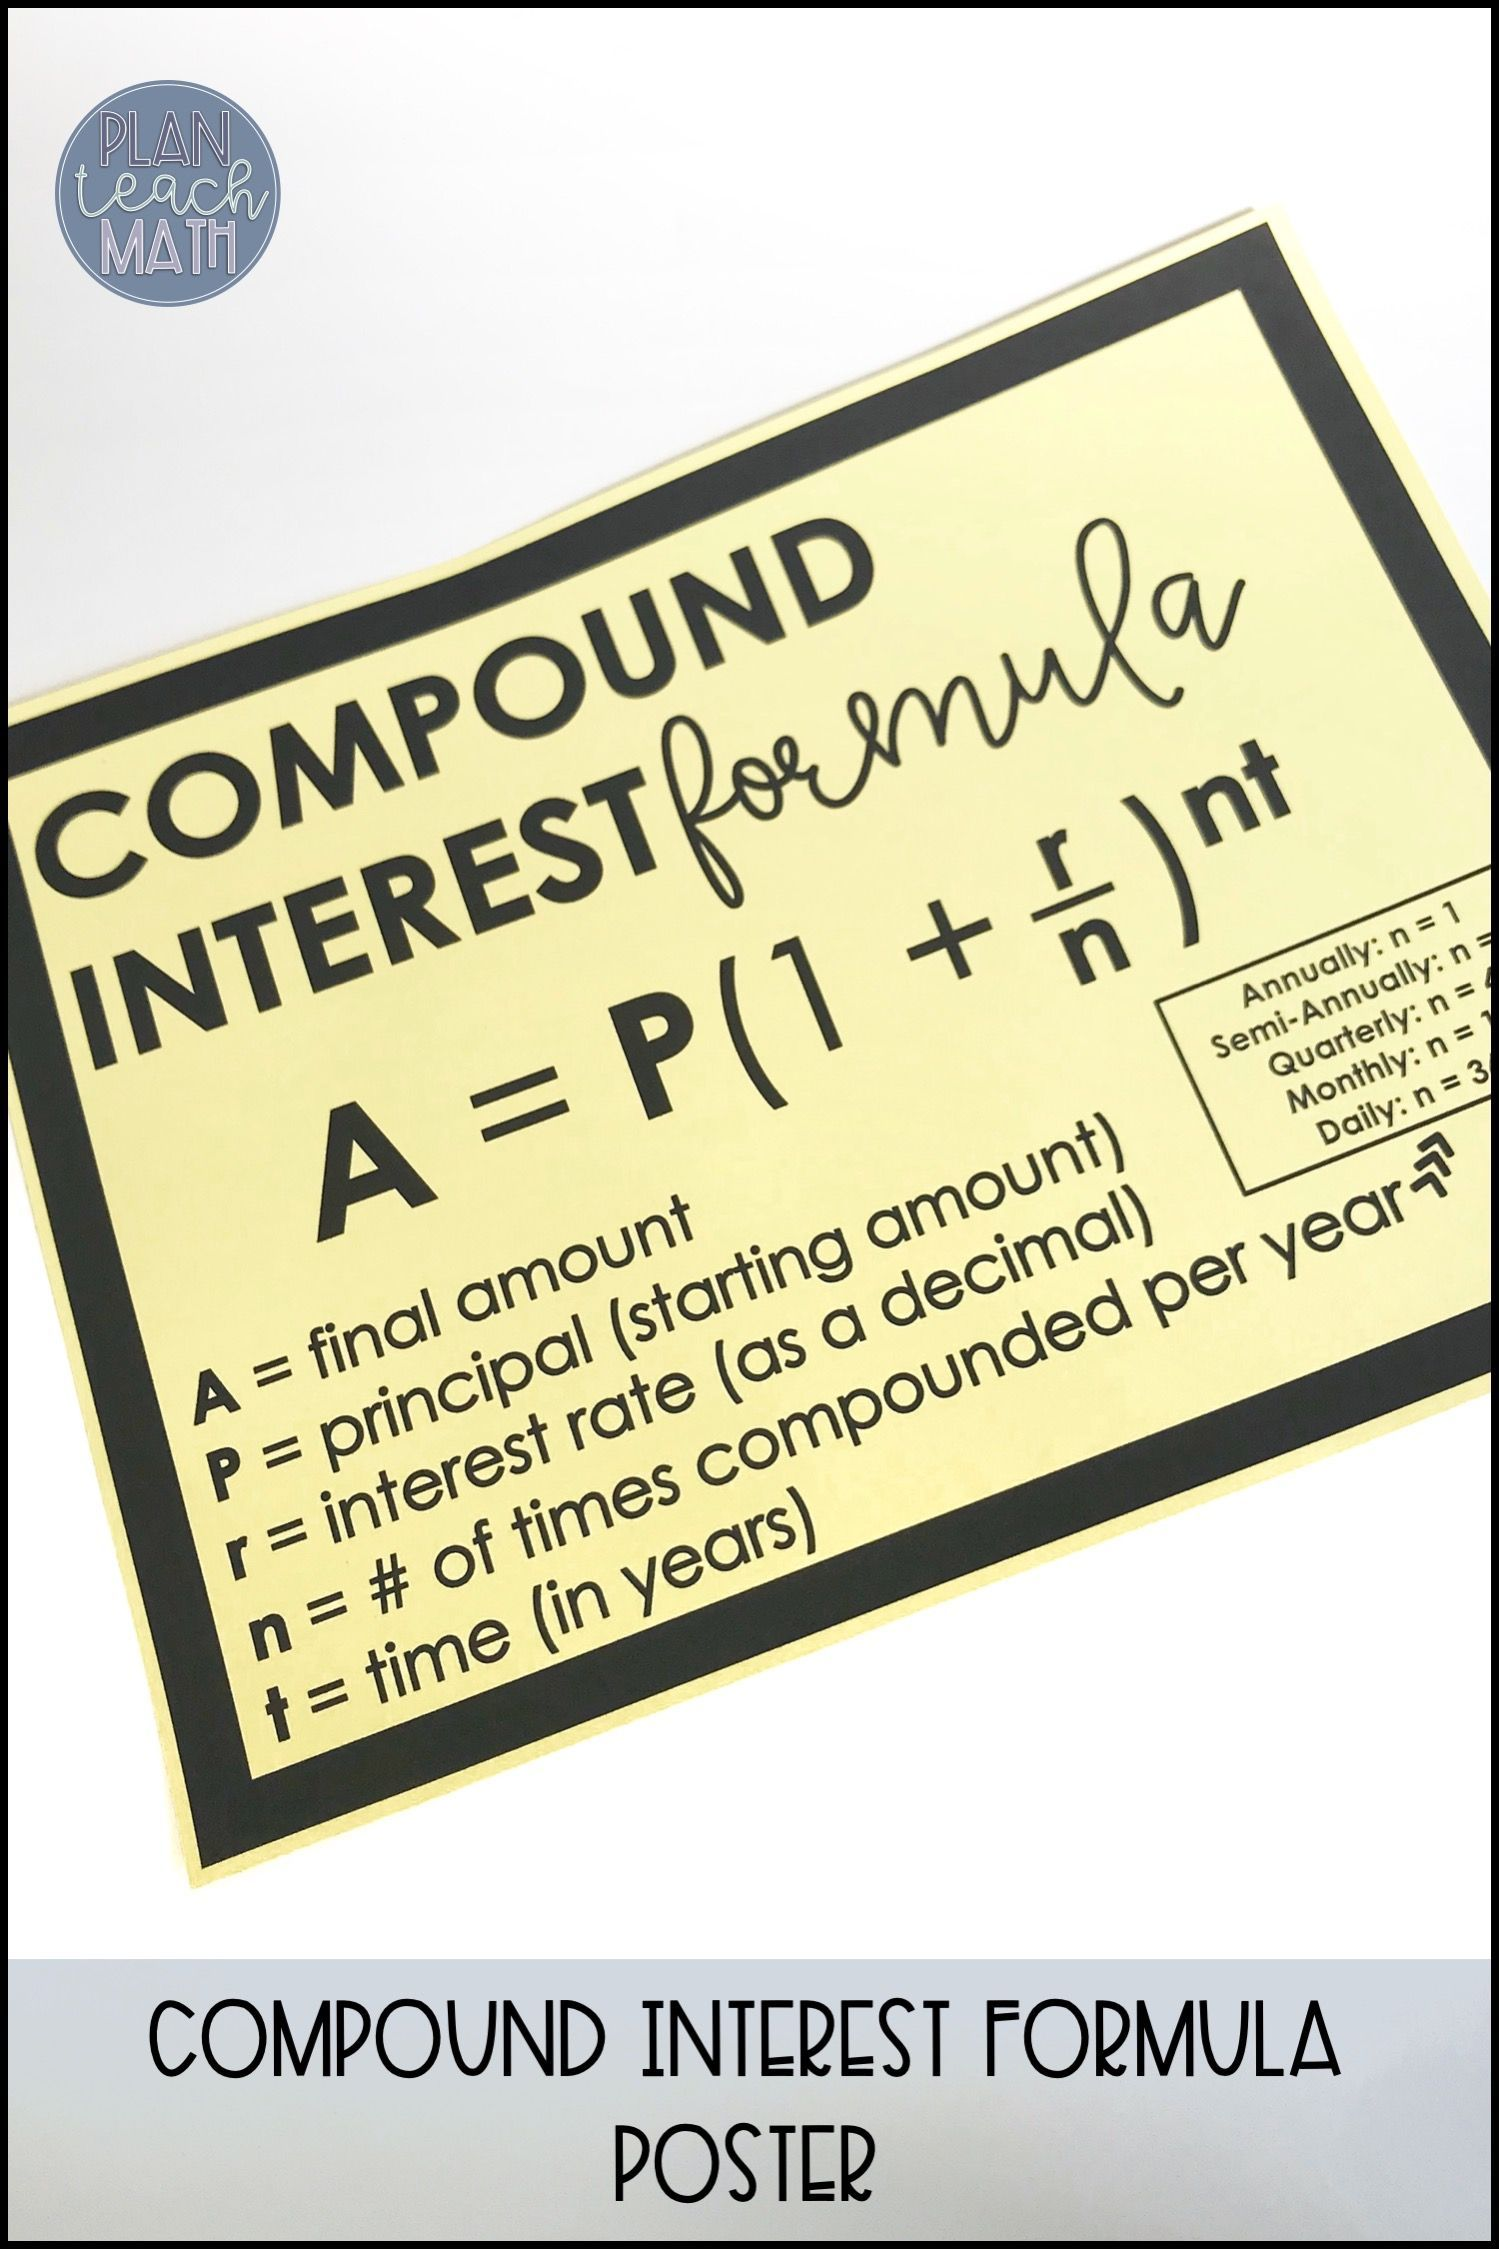 How To Calculate Compound Interest Using Formula